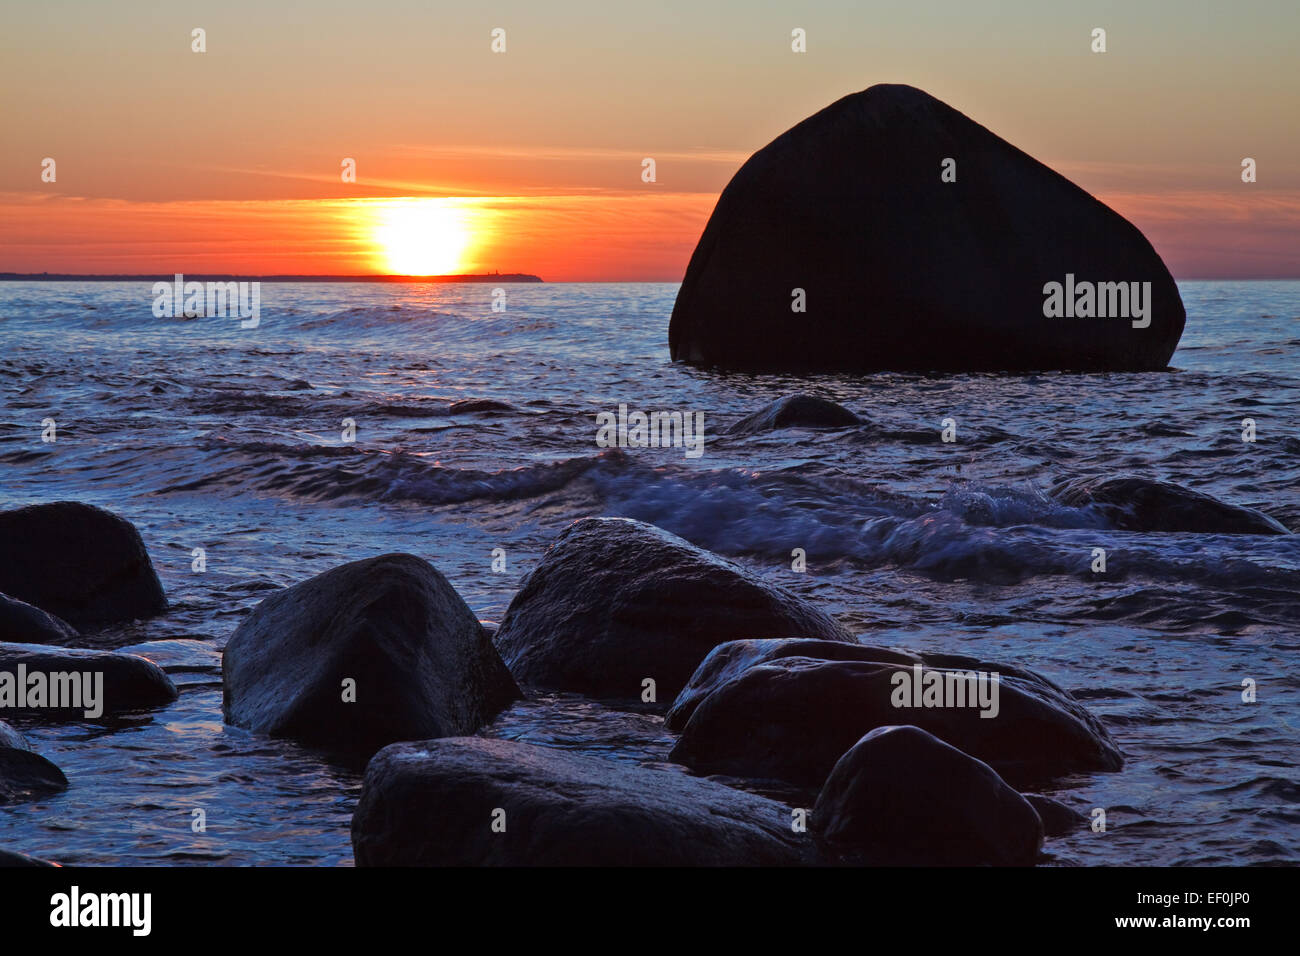 Swan Stone Stock Photos & Swan Stone Stock Images - Alamy